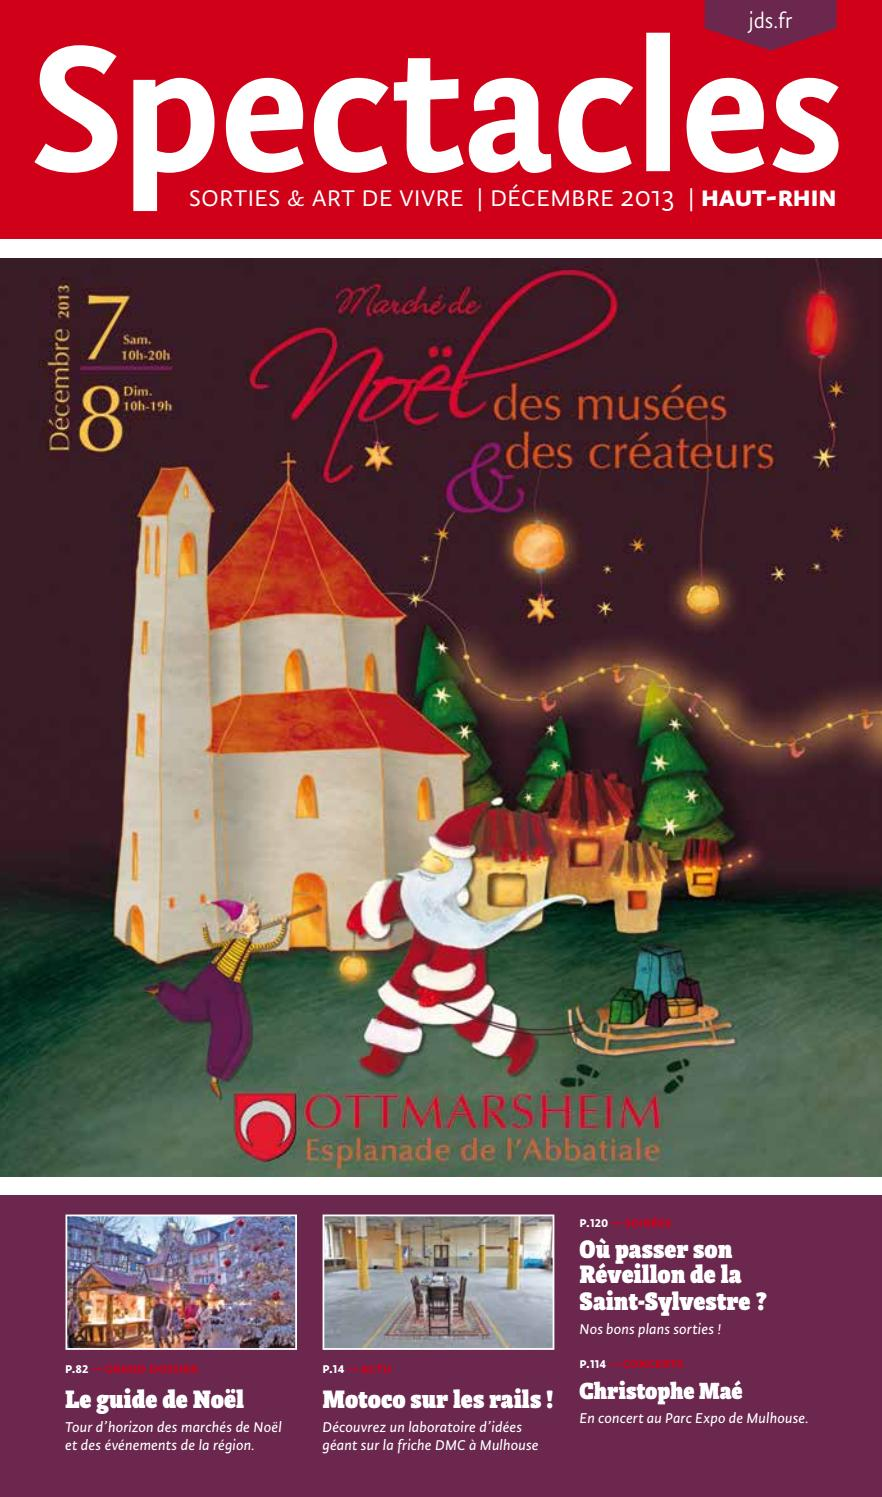 Noël Nativité Set Noël Traditionnel figures décoration 14 cm multicolore